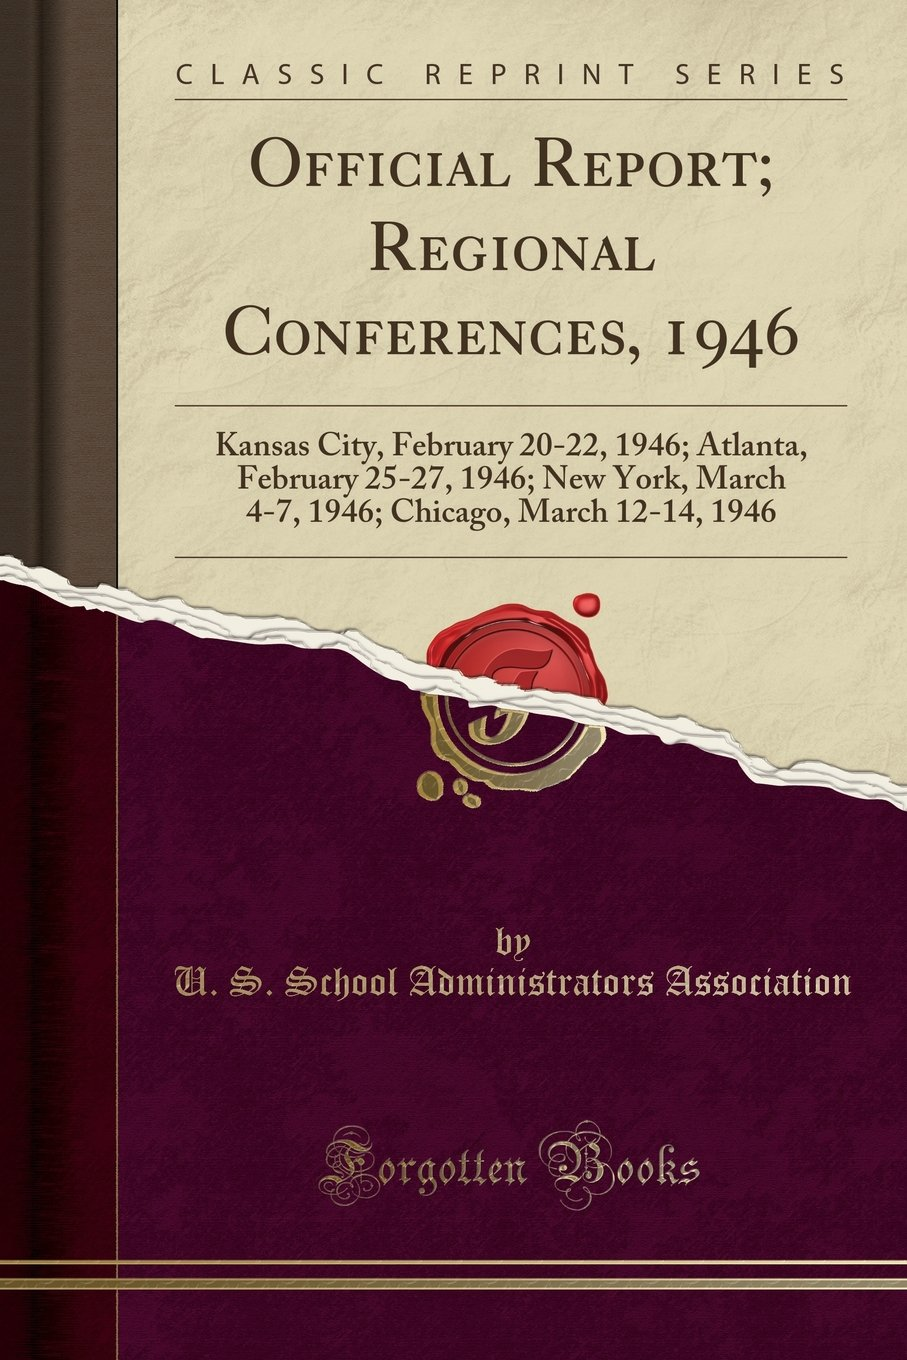 Download Official Report; Regional Conferences, 1946: Kansas City, February 20-22, 1946; Atlanta, February 25-27, 1946; New York, March 4-7, 1946; Chicago, March 12-14, 1946 (Classic Reprint) pdf